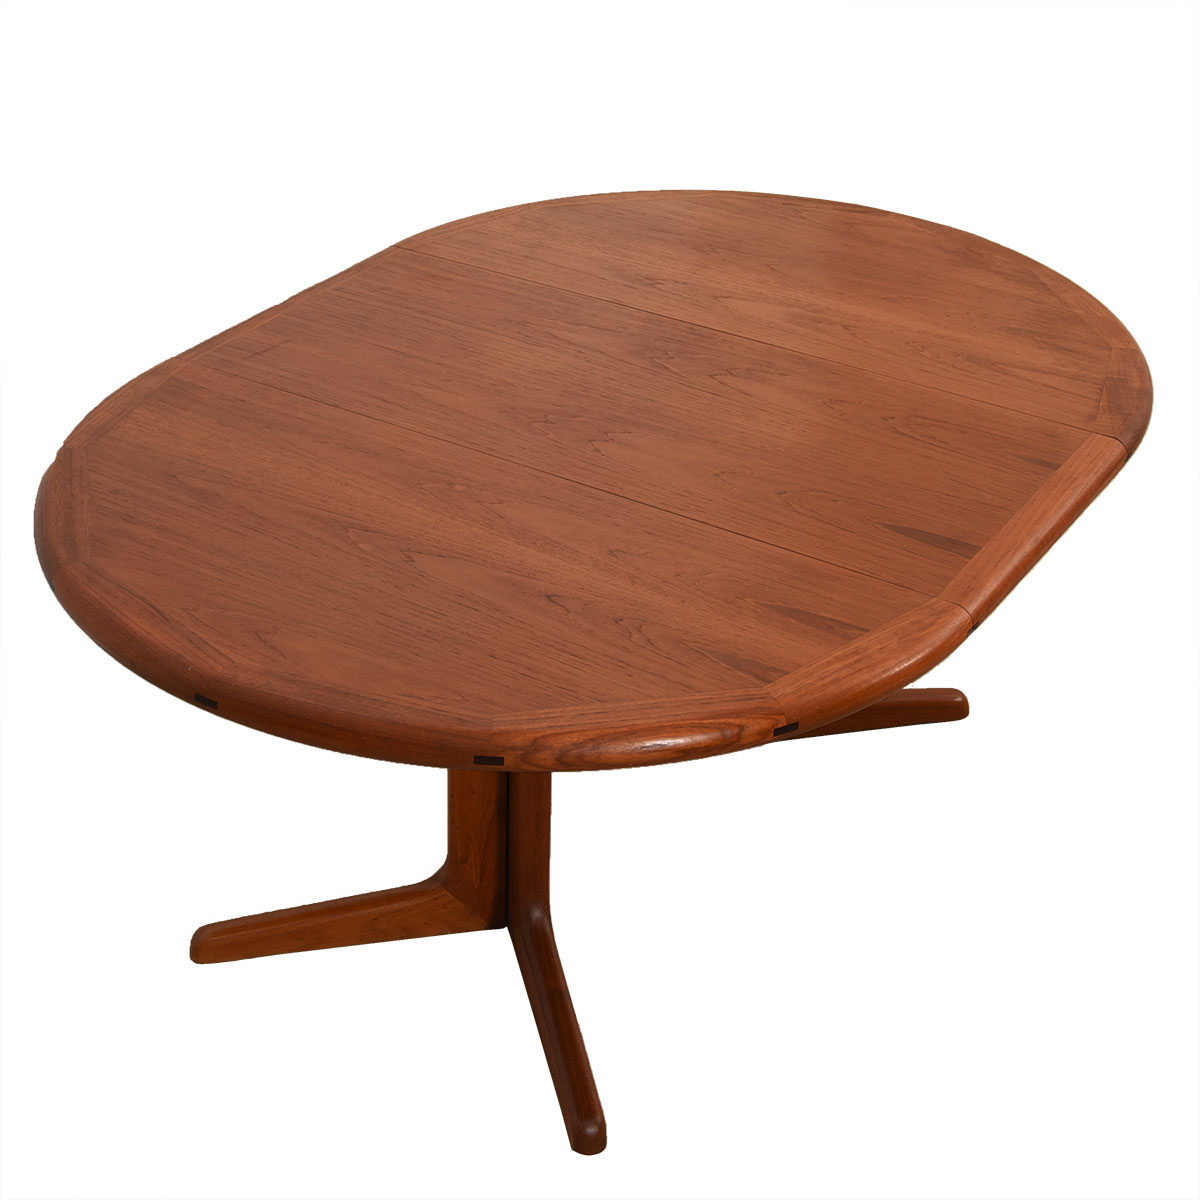 Danish Modern Expanding Round Dining Table w/ Leaf